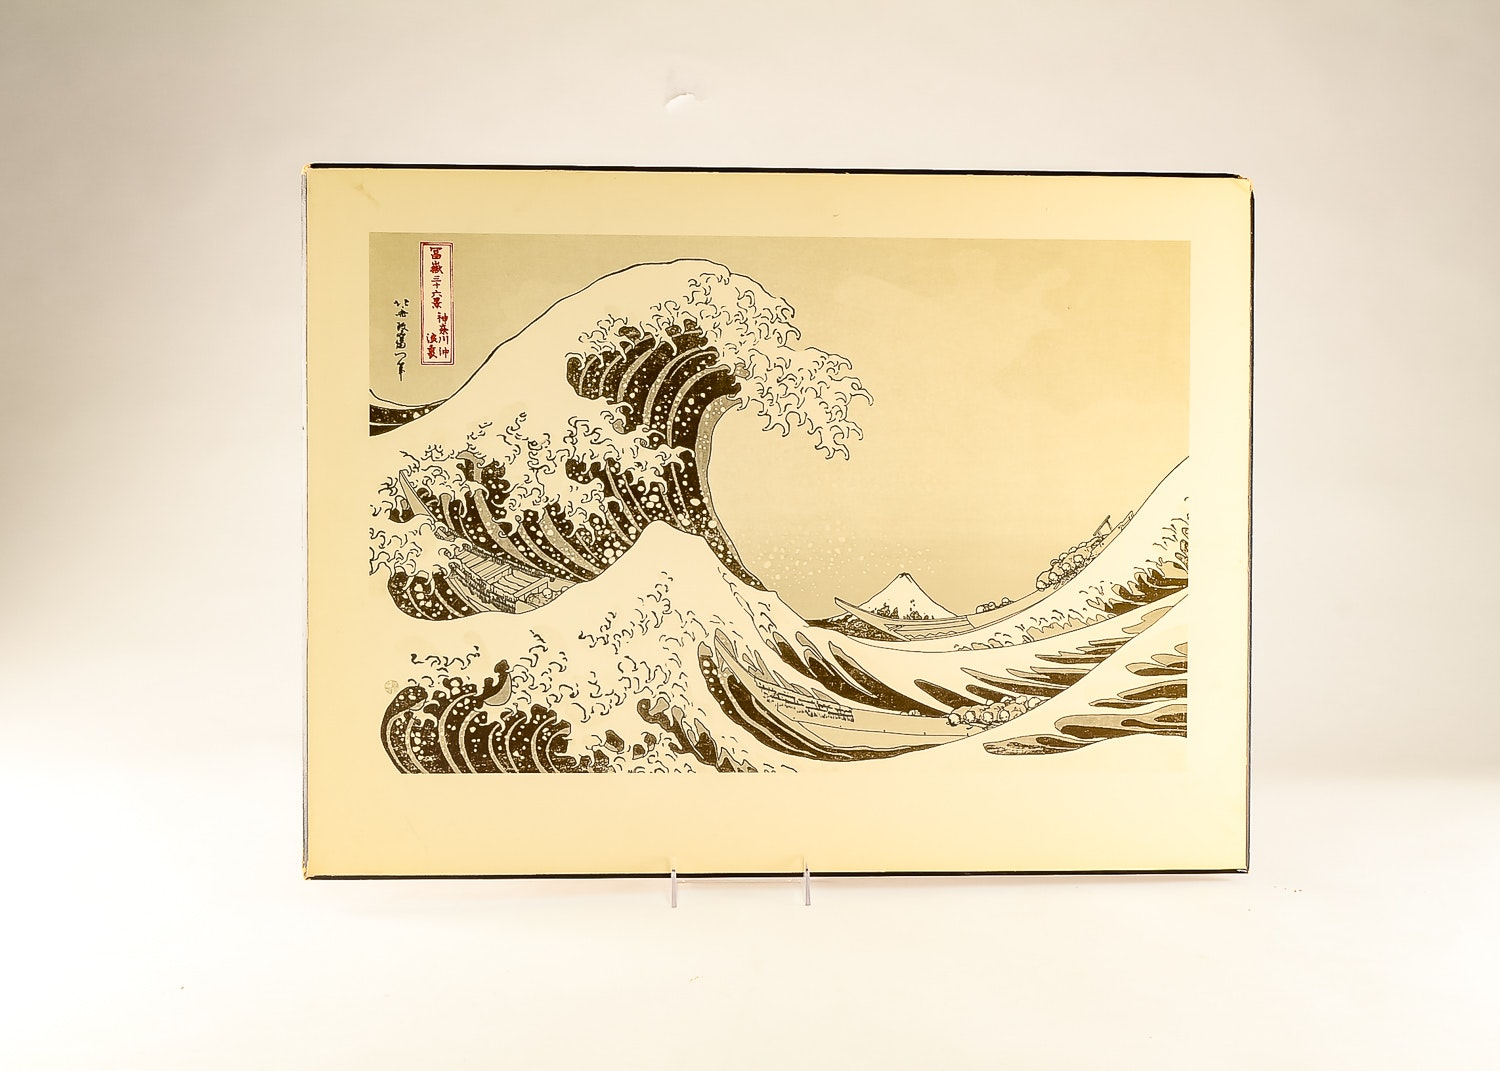 """The Great Wave"" Lithograph after Hokusai"